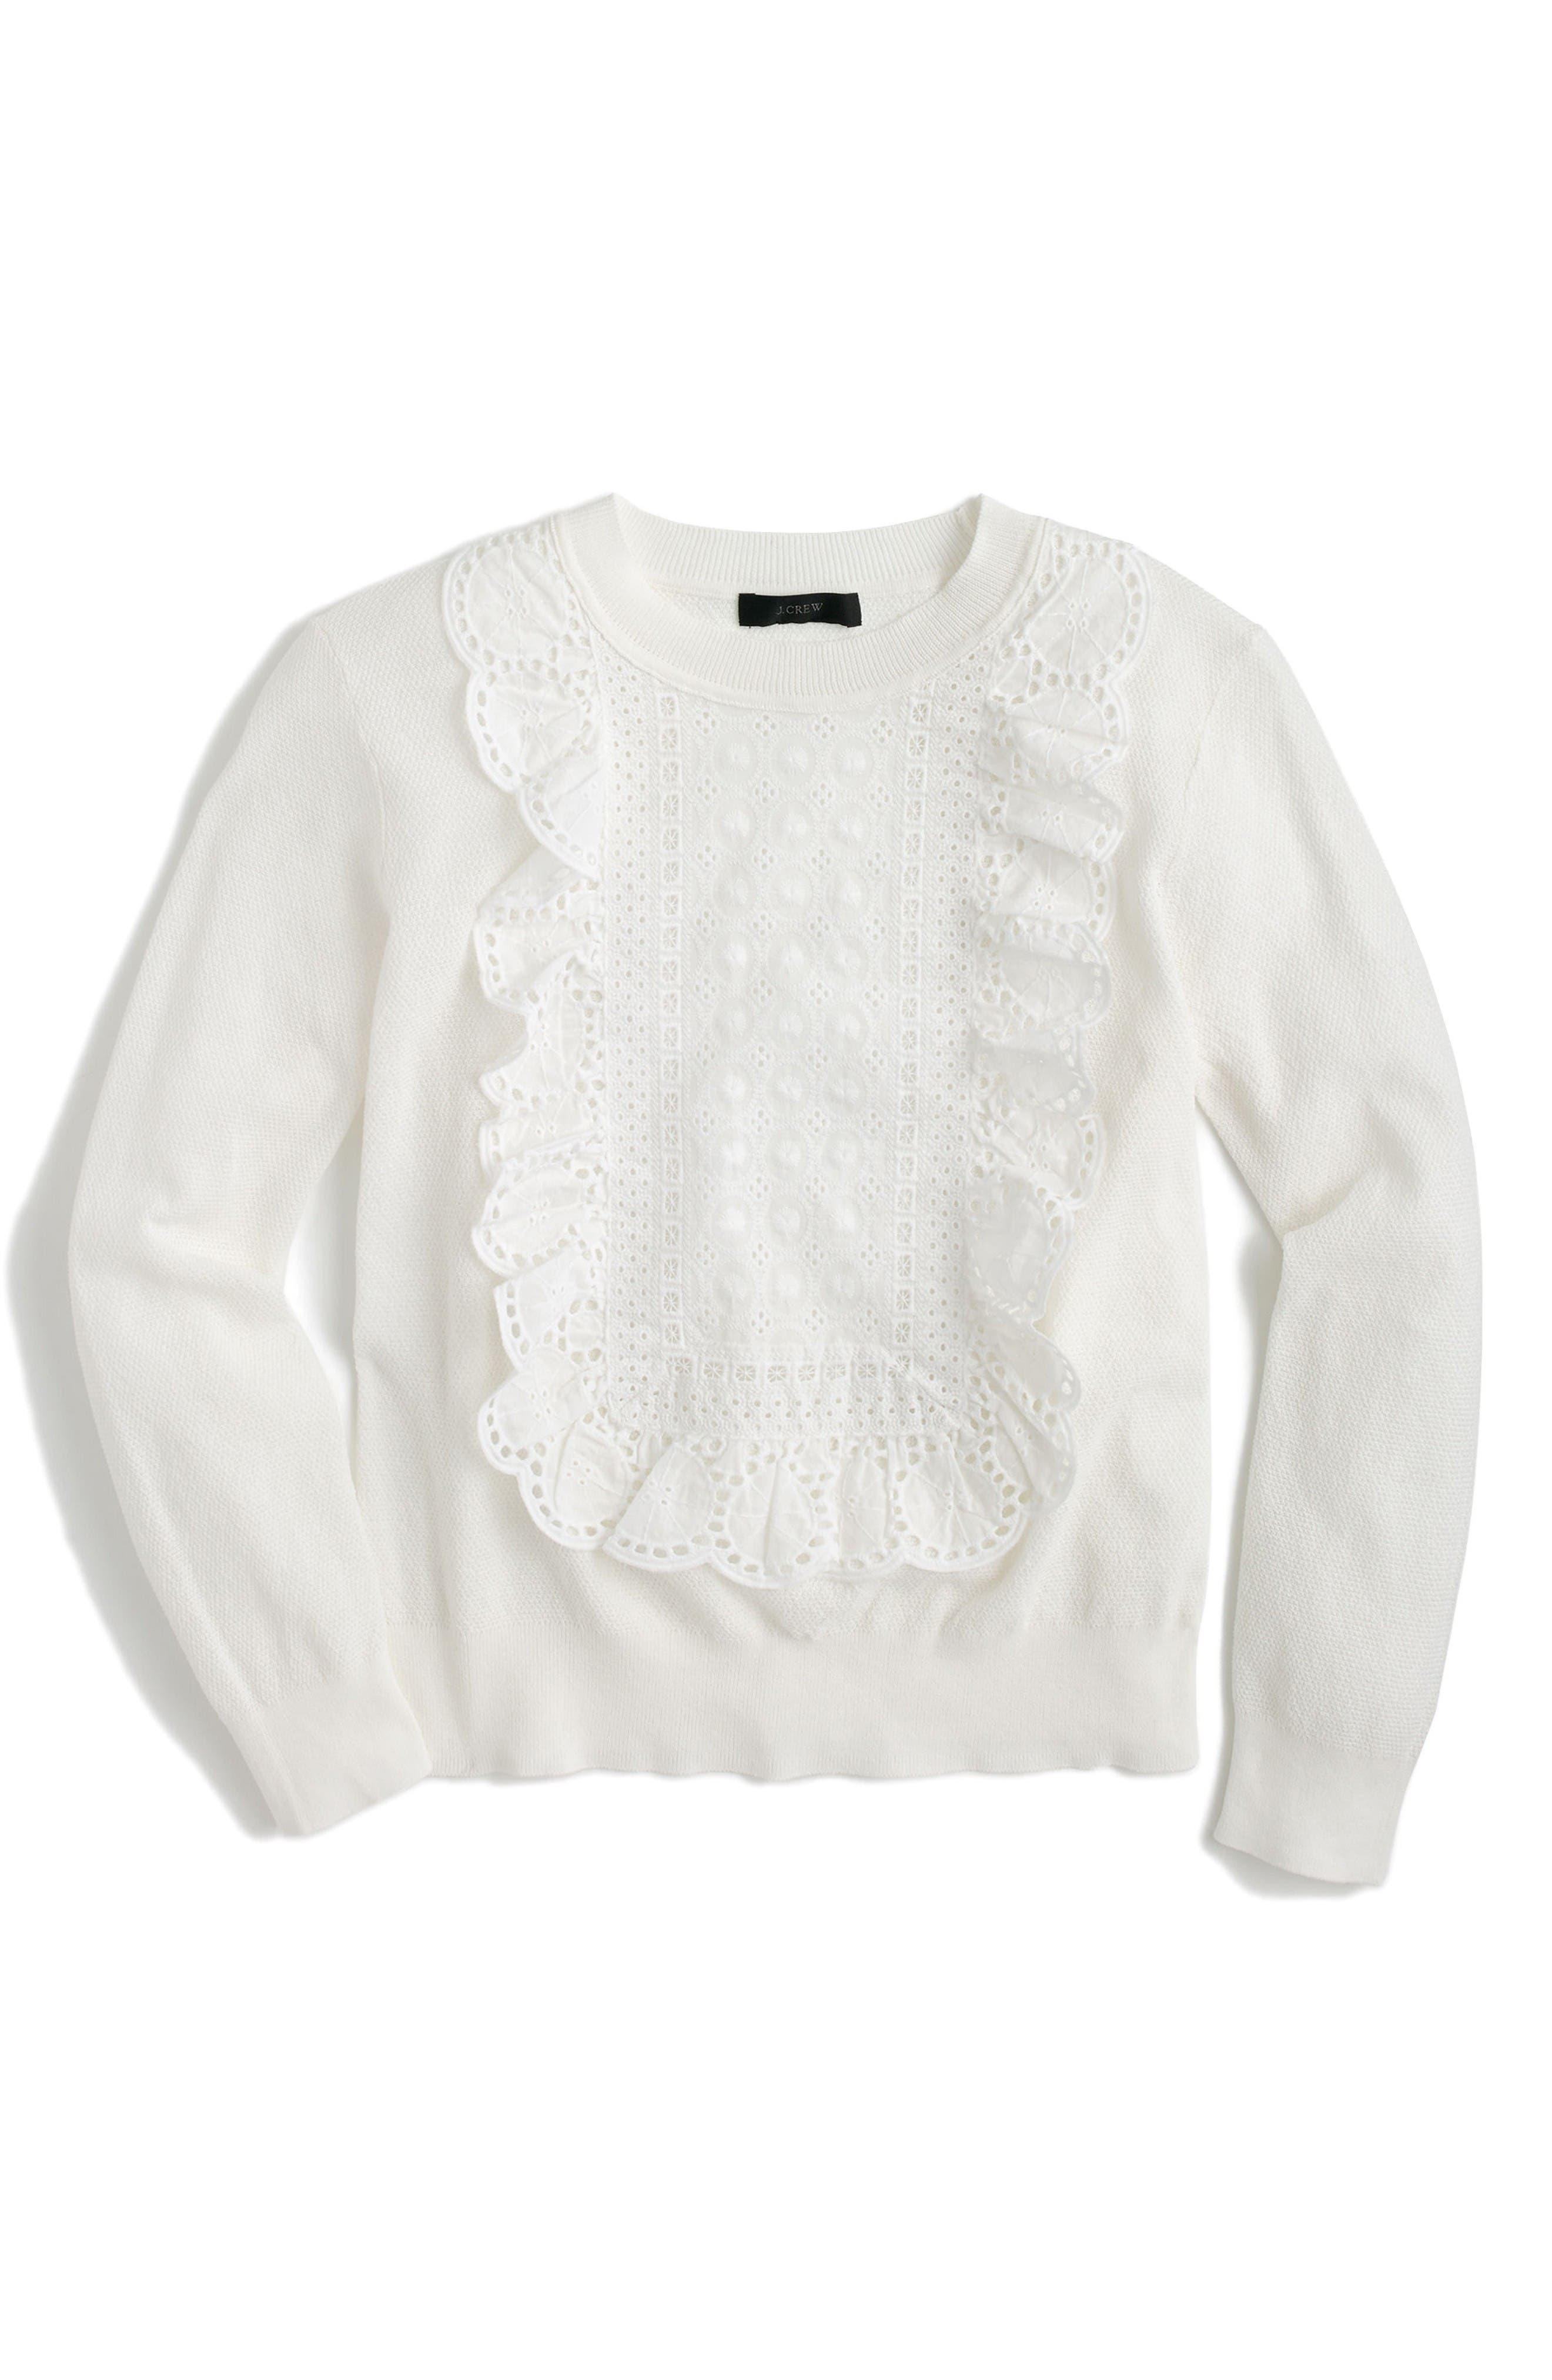 Alternate Image 1 Selected - J.Crew Lara Lace Bib Pullover